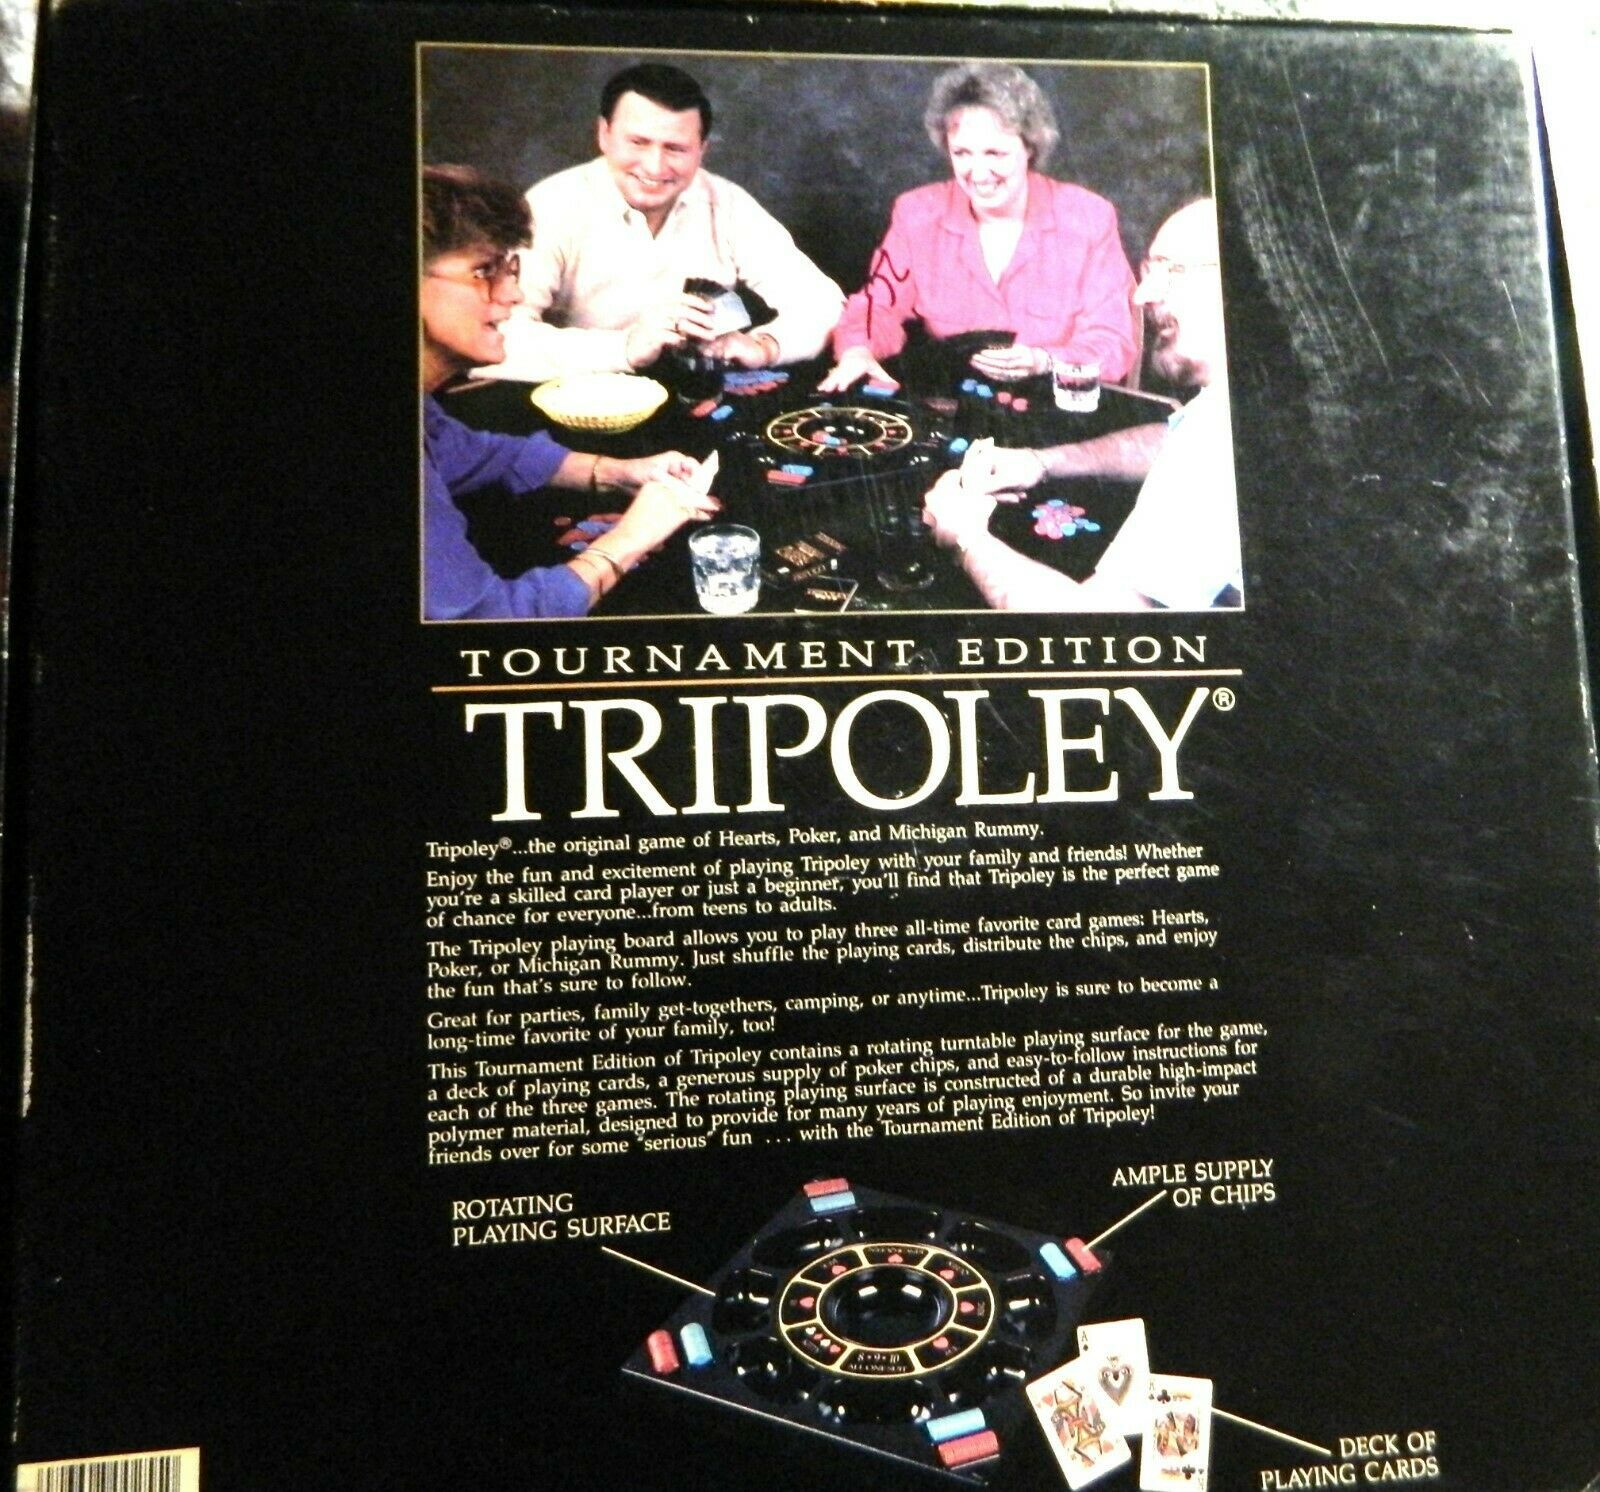 Tripoley Tournament Edition by Cadaco Board Game 1989 Turntable image 2